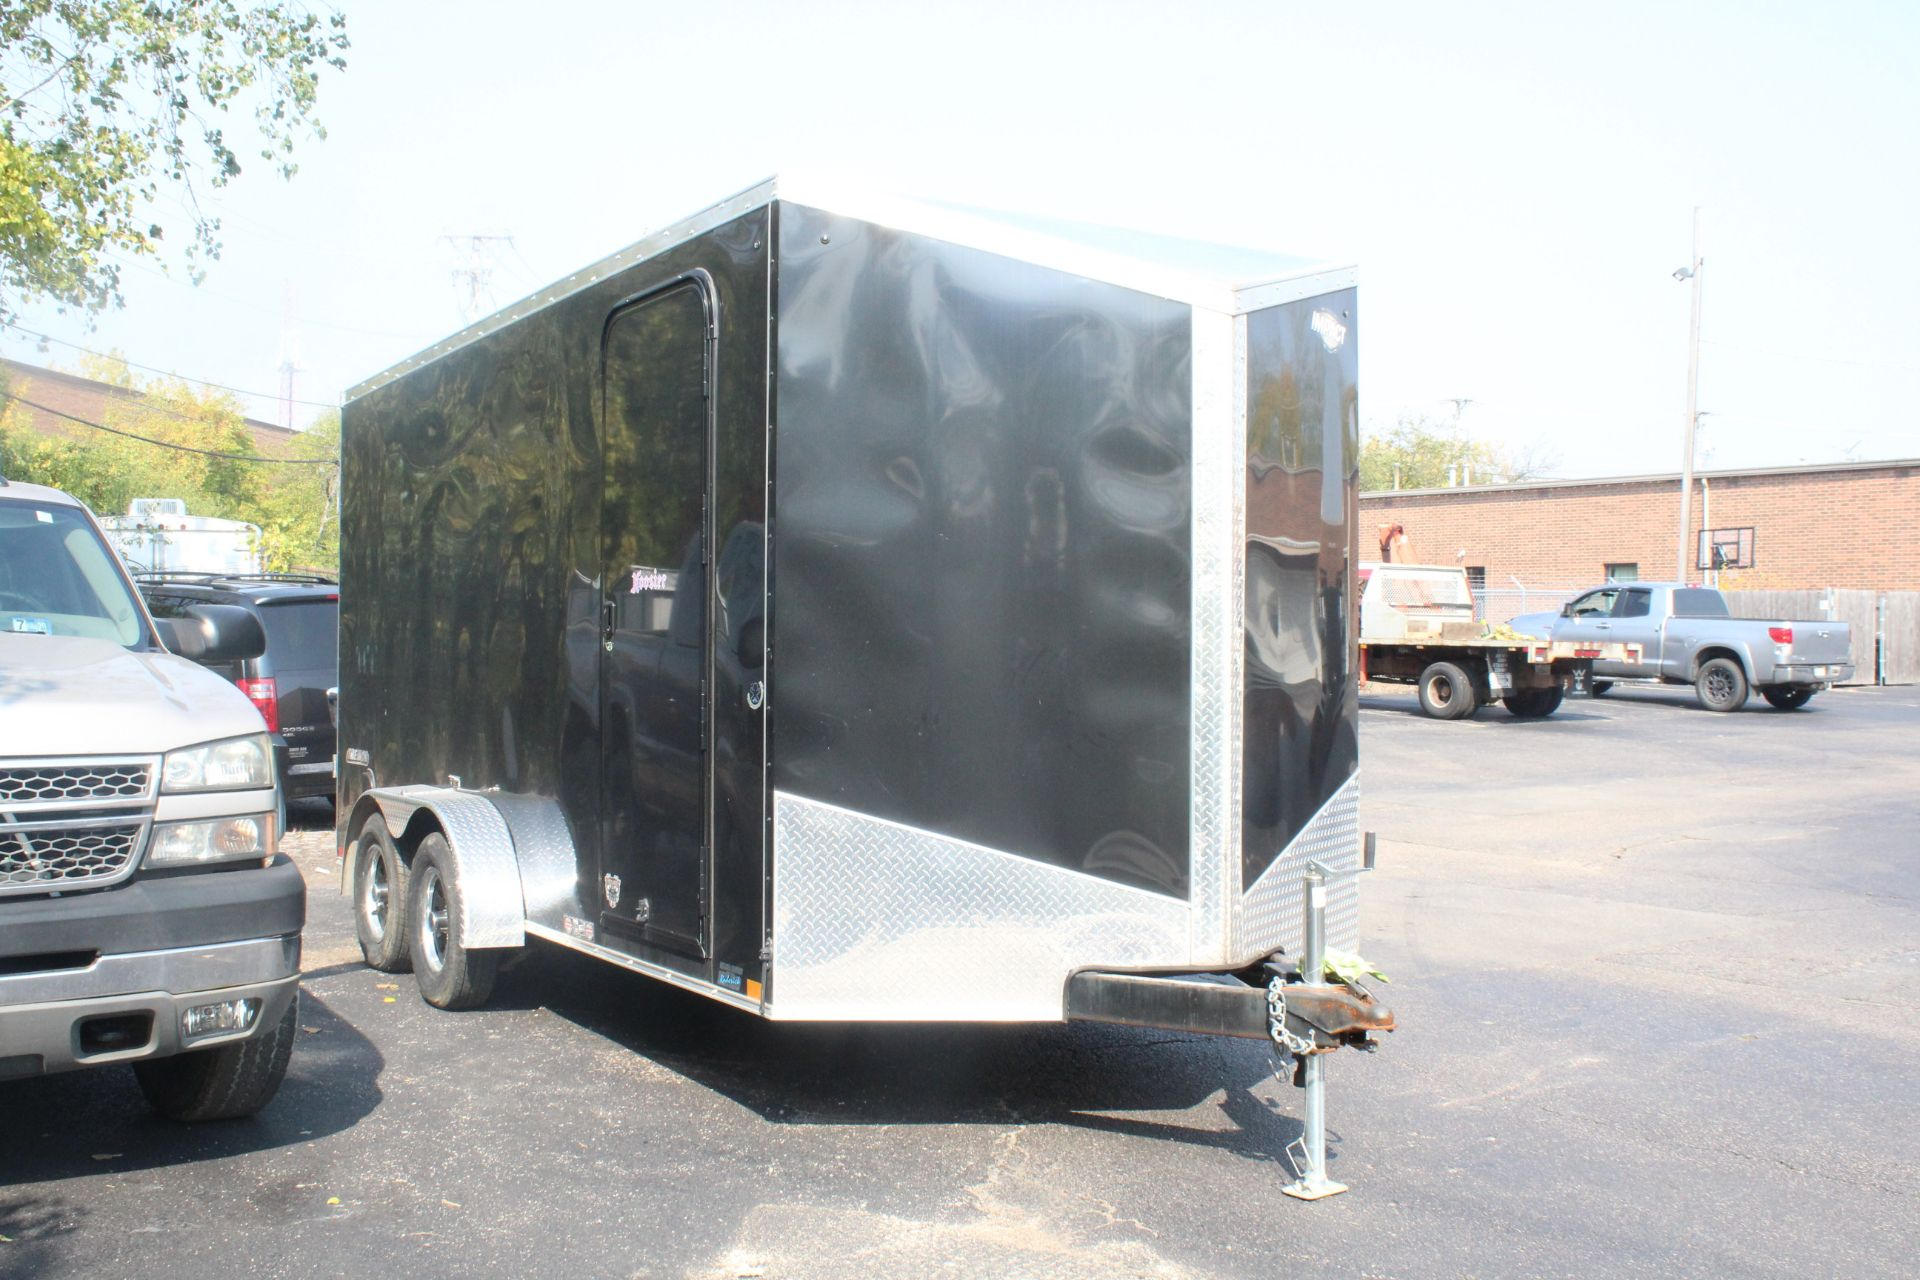 Lot 11 - 2018 IMPACT MODEL ITT716TA2 ENCLOSED CARGO TRAILER, 7FT X 16FT, VIN 7HLBE1627KE000527